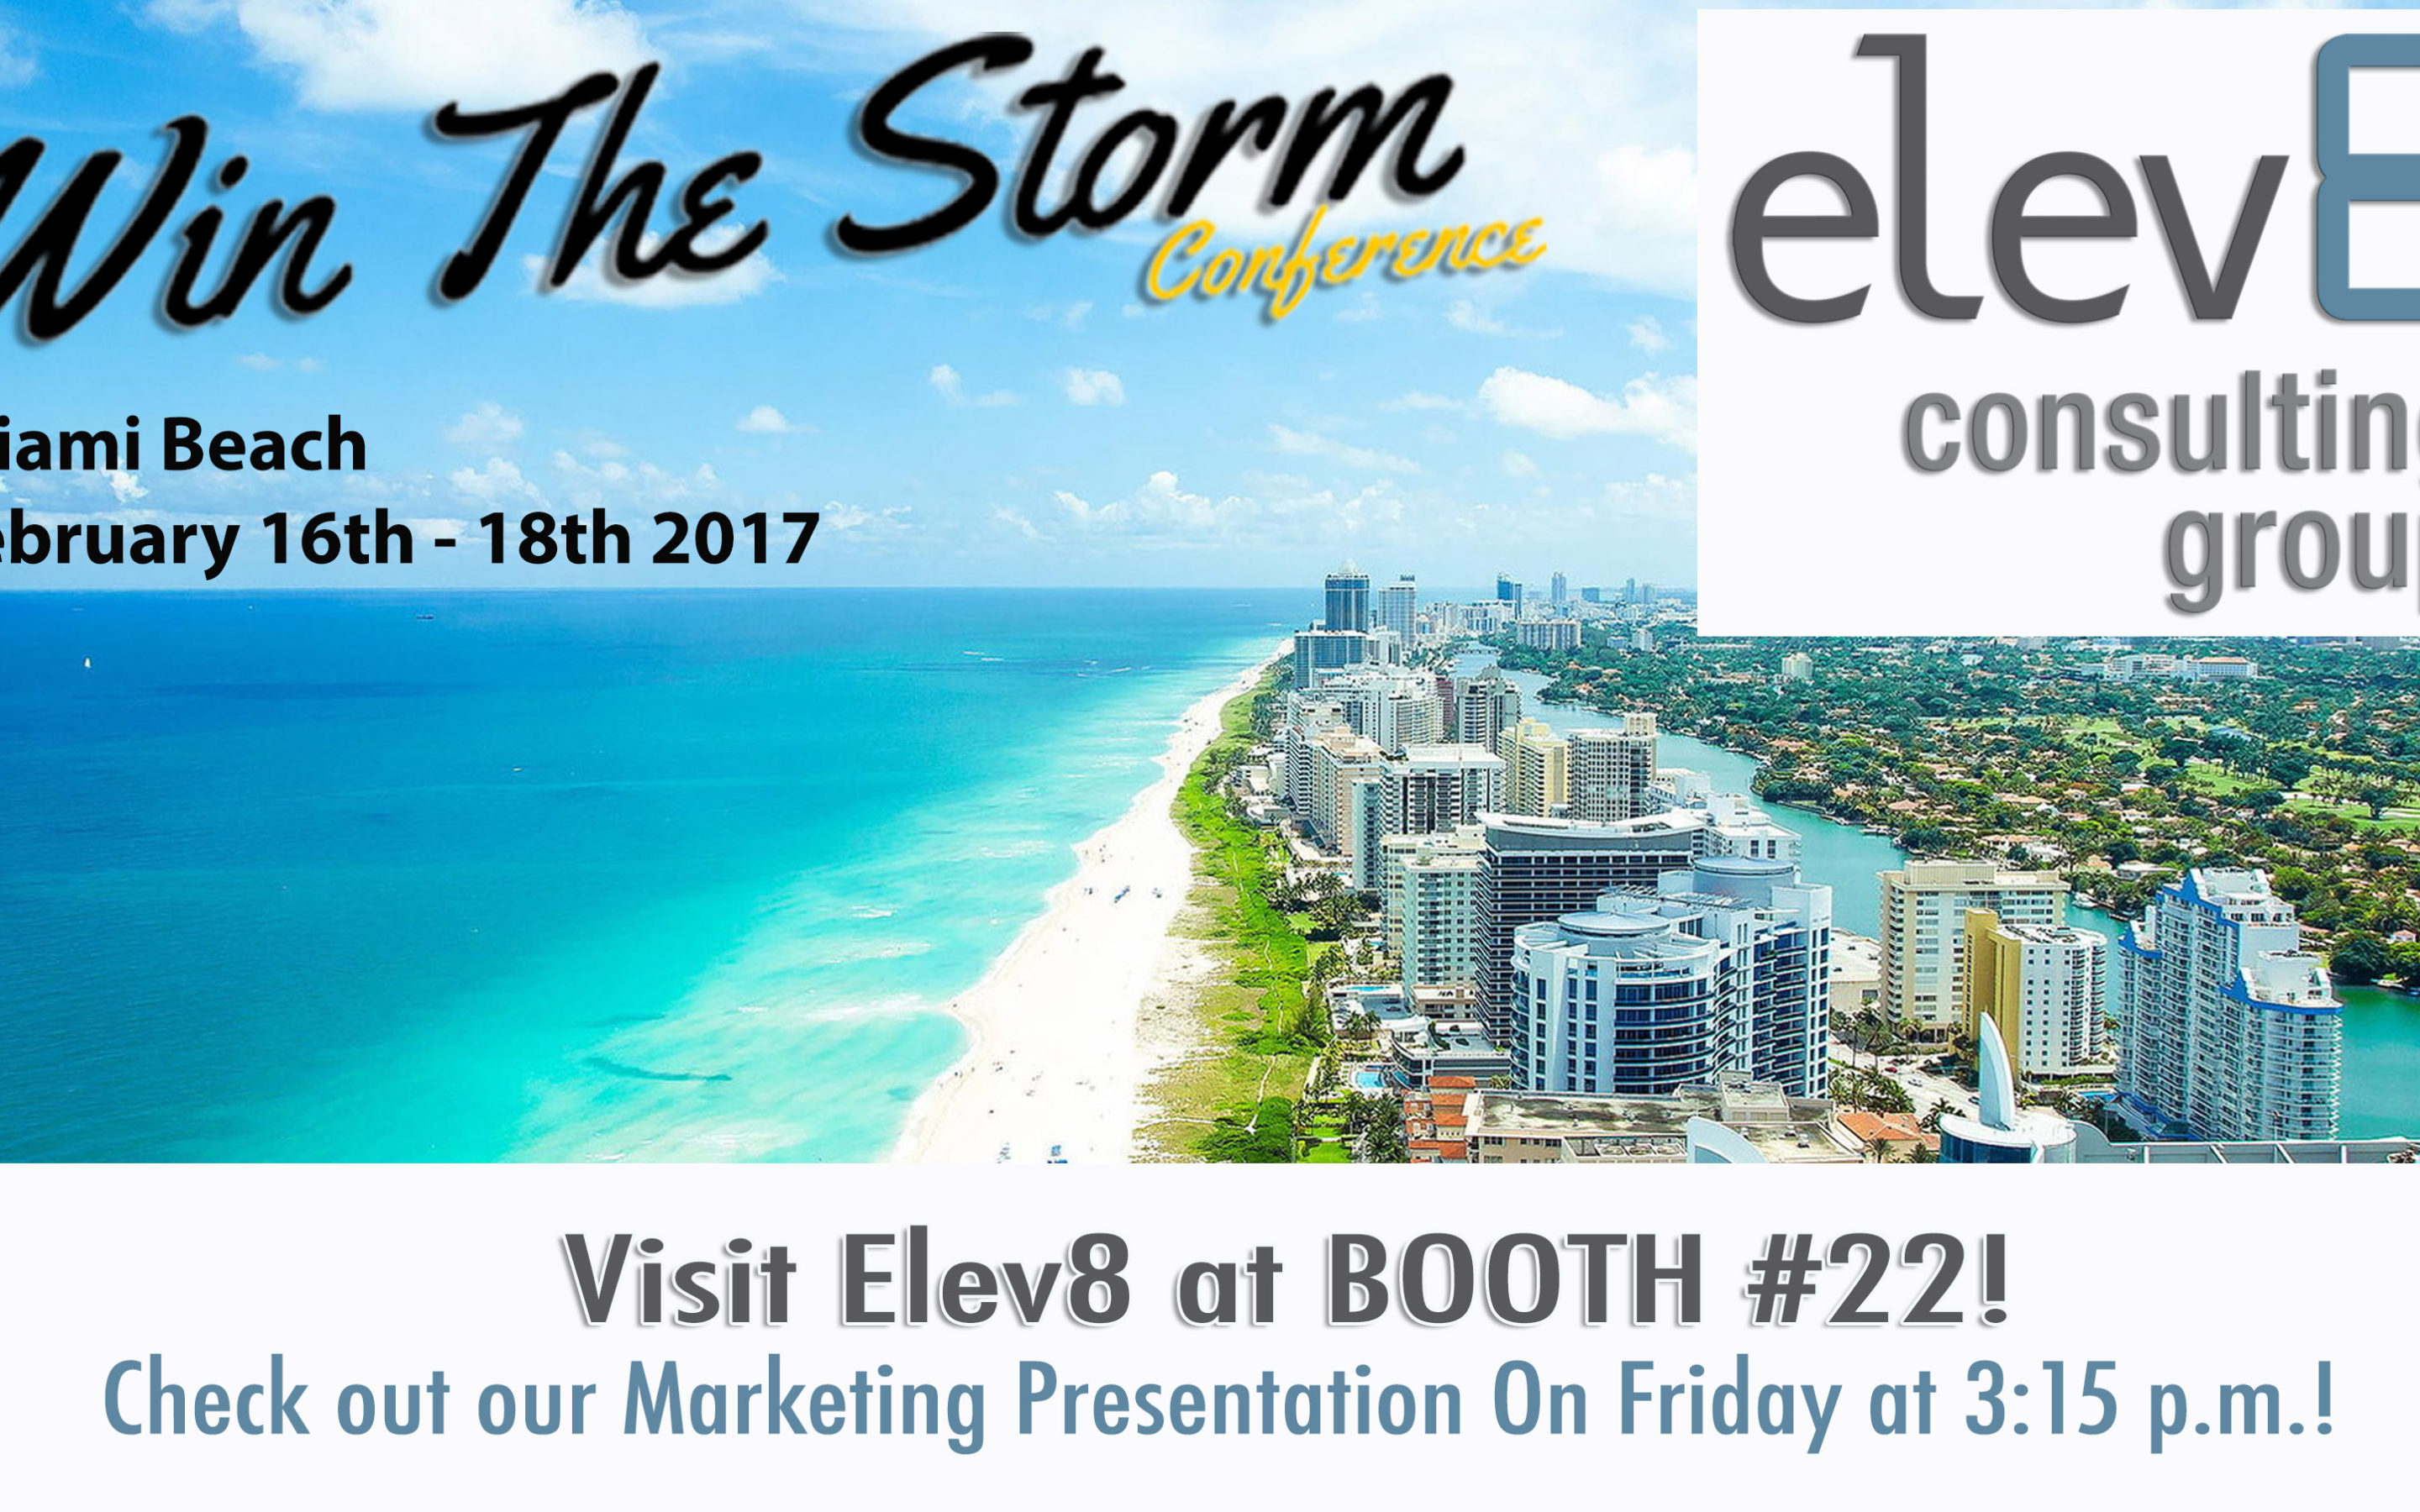 Elev8 Consulting Group Founder Angela Delmedico Presents Marketing At Leading Miami Conference